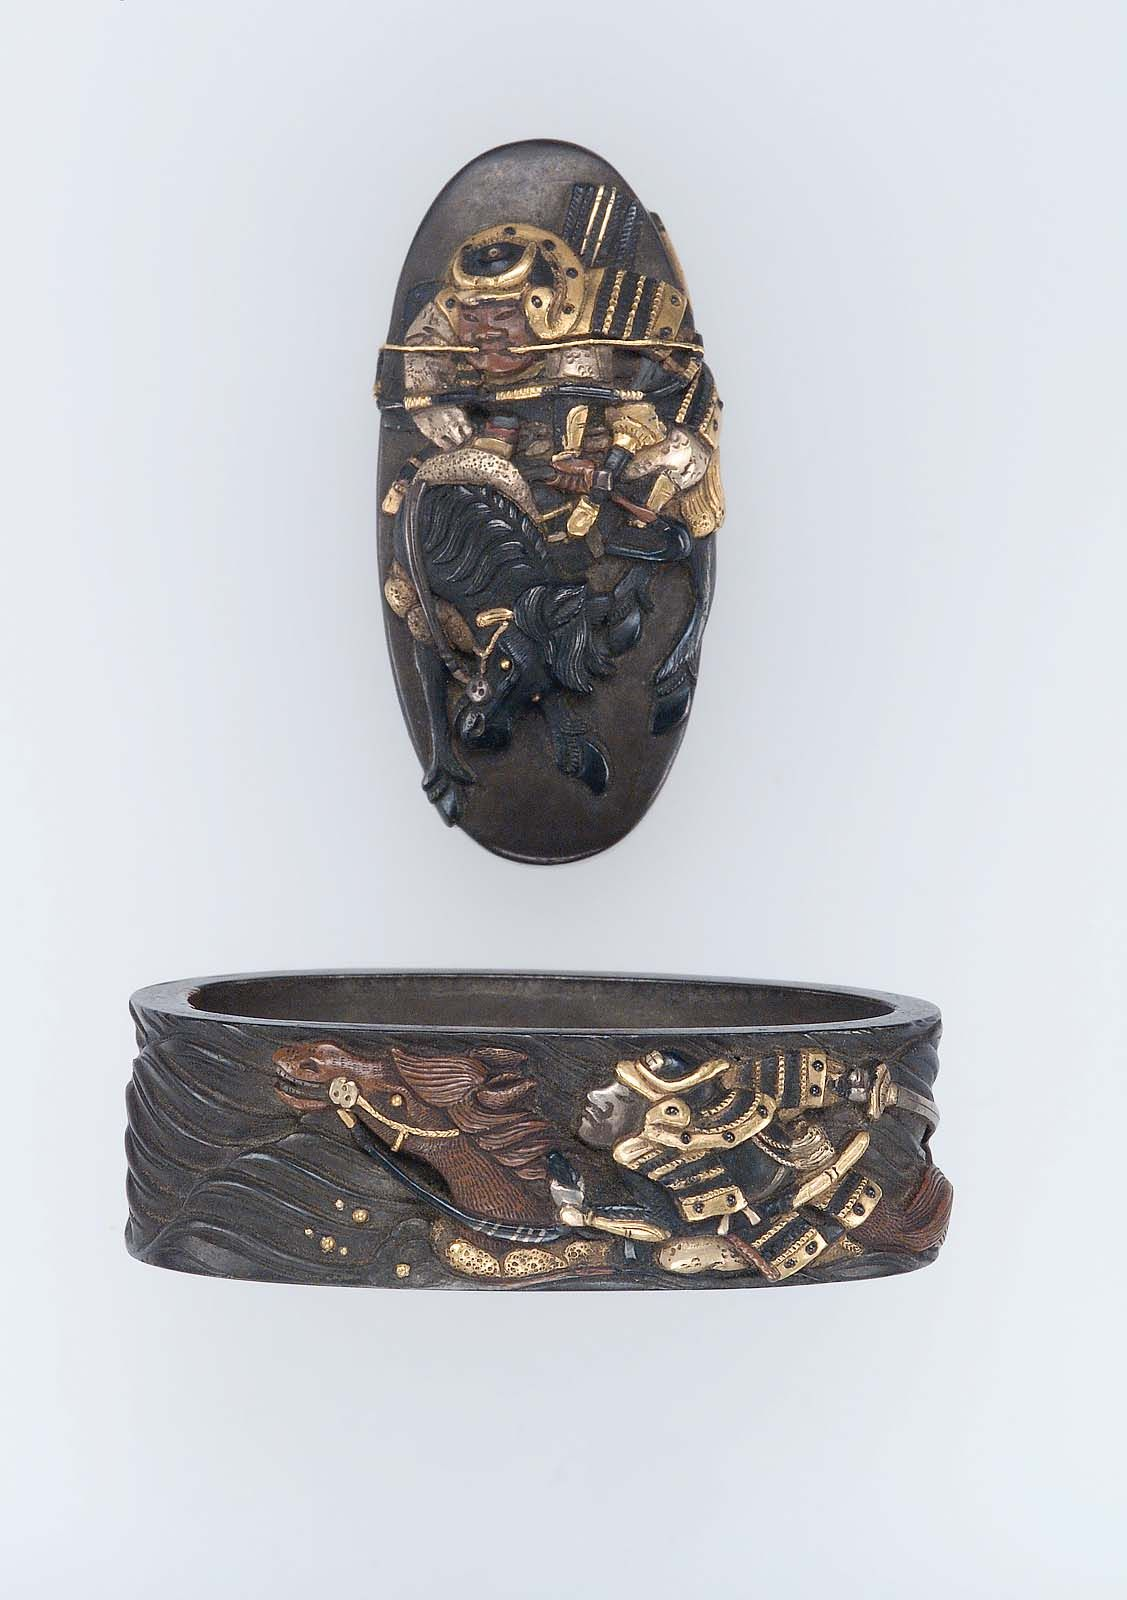 Fuchi-kashira with designs of the race across the Uji River. Japanese Edo period late 18th–early 19th century http://www.mfa.org/collections/object/fuchi-kashira-with-designs-of-the-race-across-the-uji-river-9703